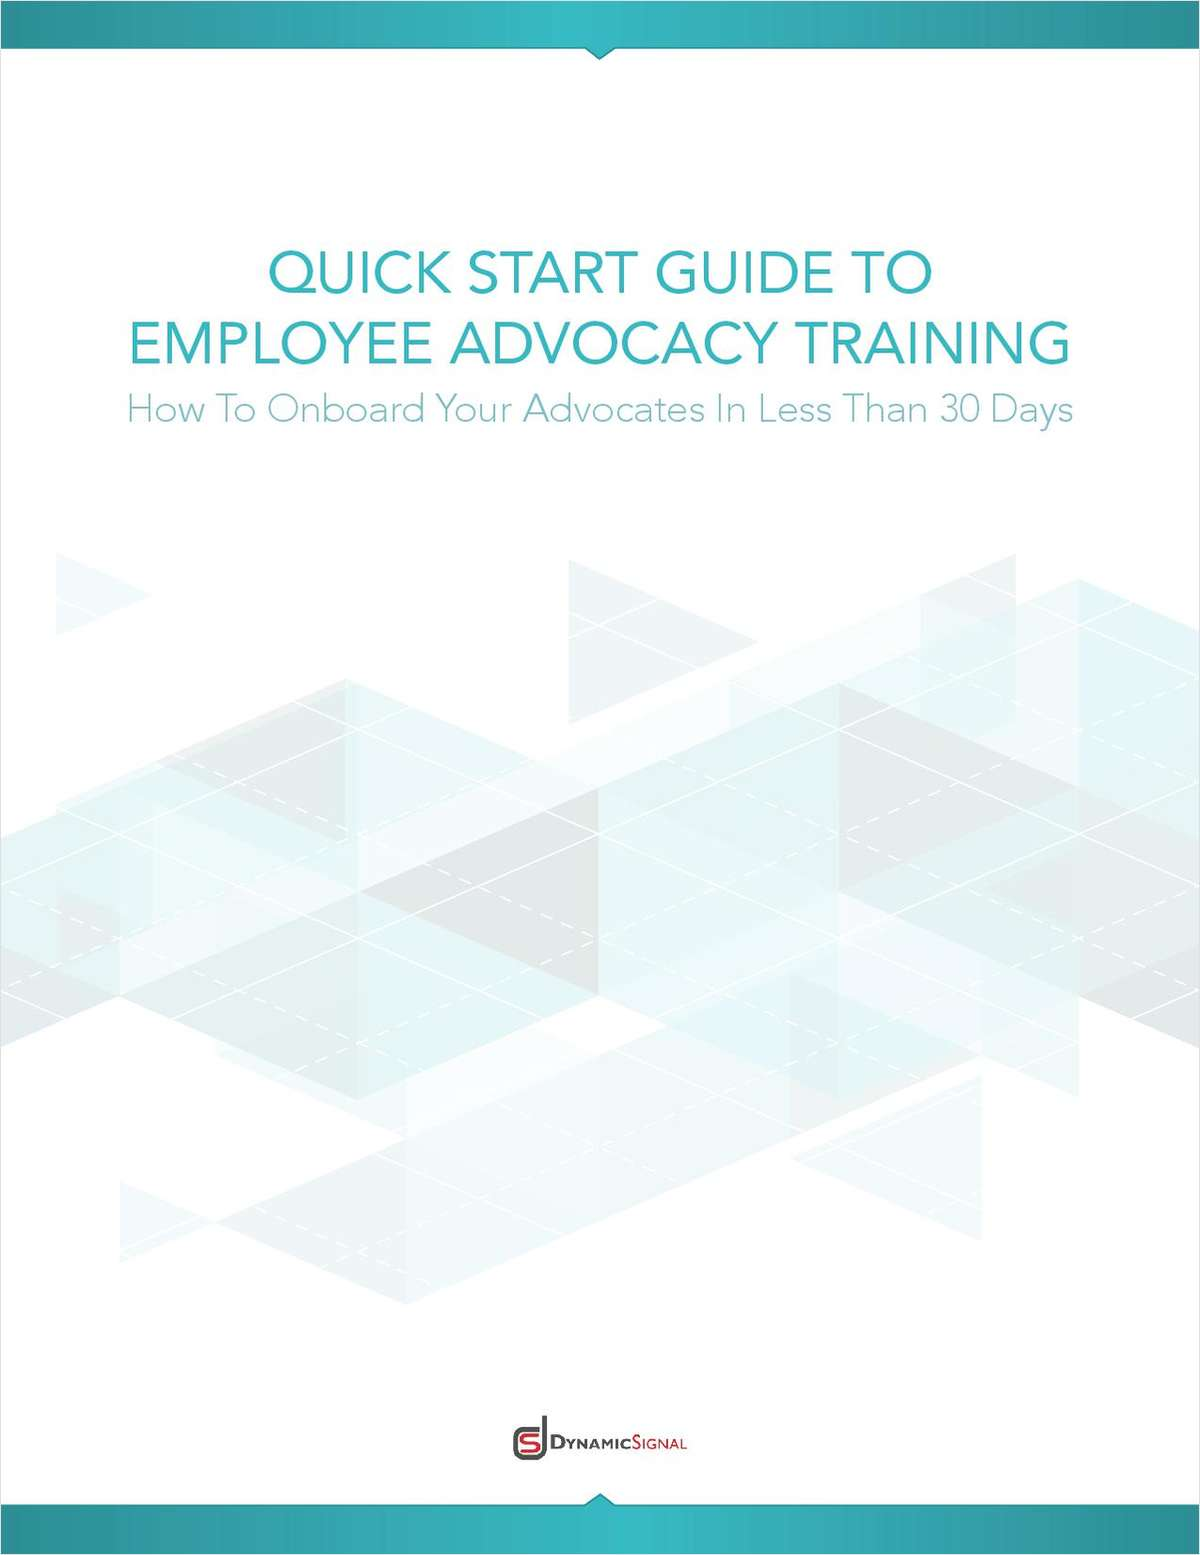 Quick Start Guide: Employee Advocacy Training